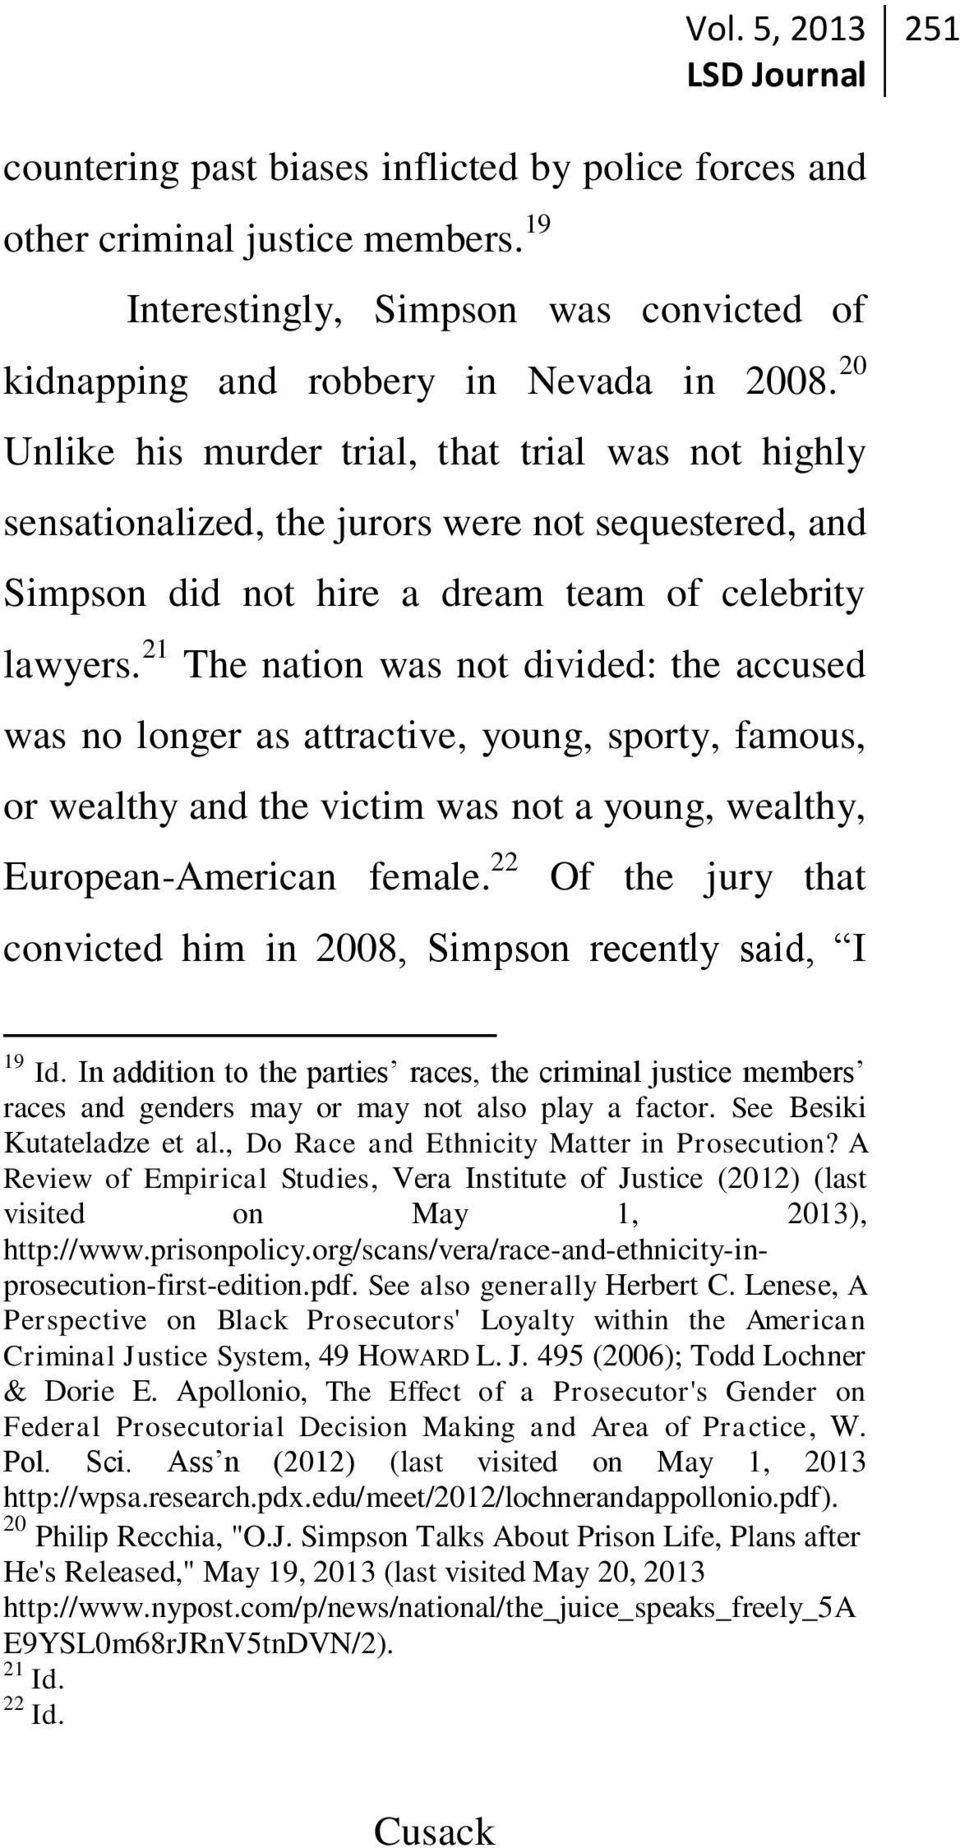 21 The nation was not divided: the accused was no longer as attractive, young, sporty, famous, or wealthy and the victim was not a young, wealthy, European-American female.